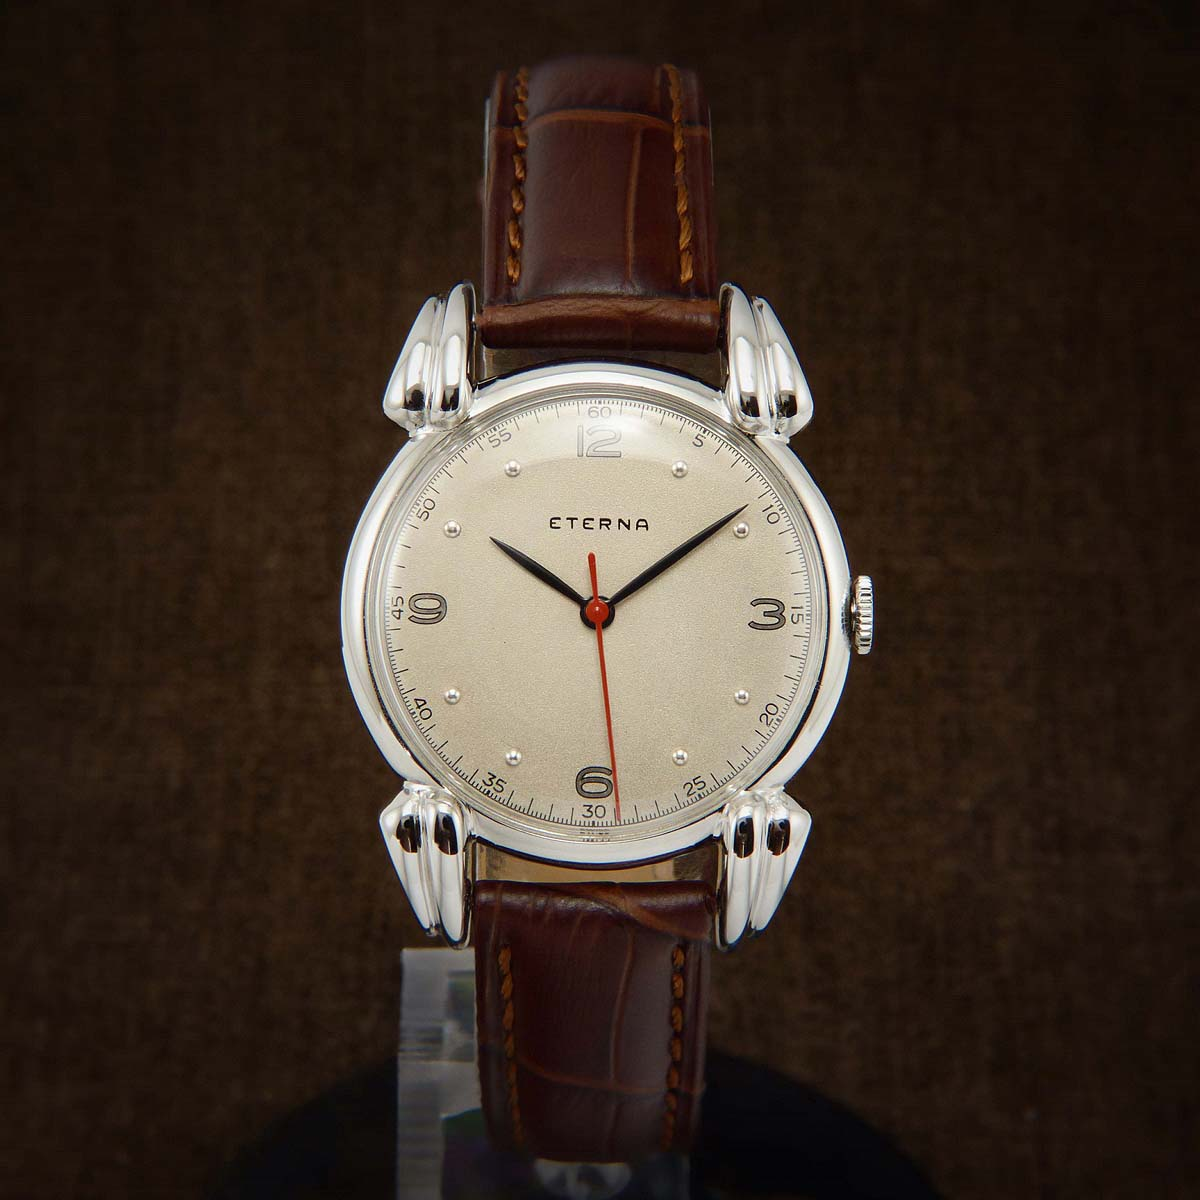 Eterna Art Deco Early Swiss Watch From 40s – Neo Classic Watches eaaa6132a1